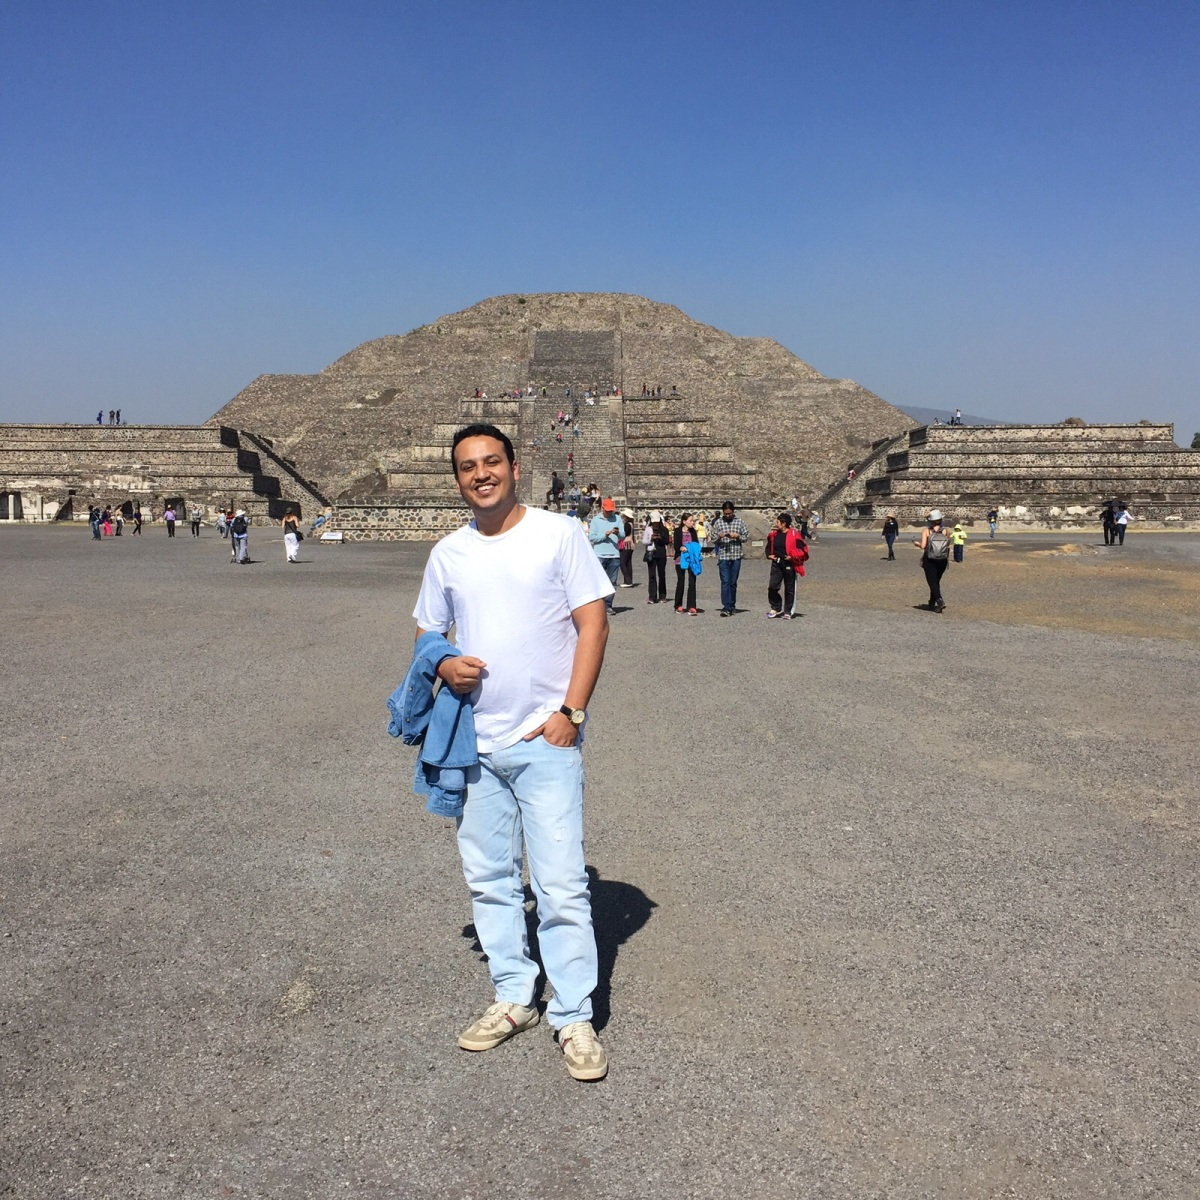 The Pyramid of the Sun, Teotihuacan Mexico